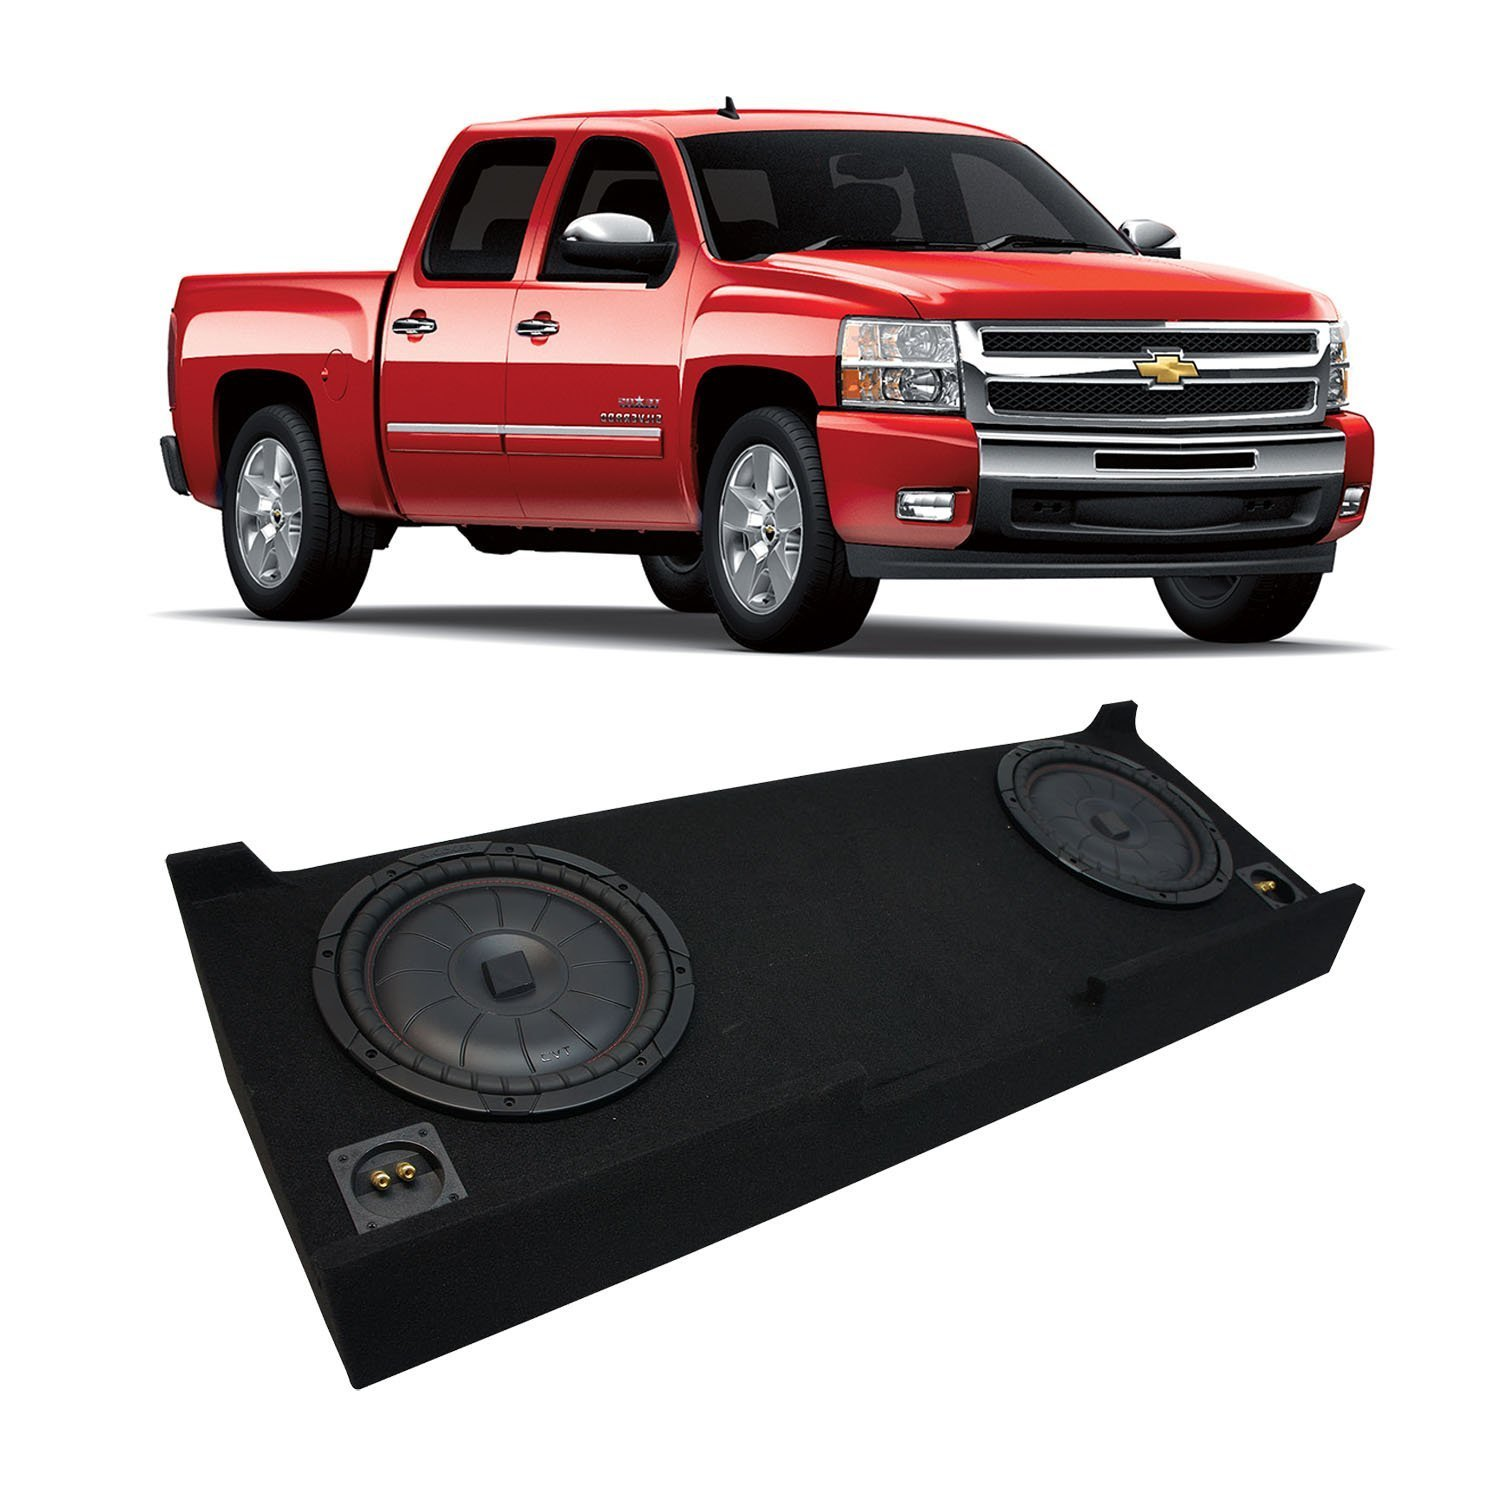 "Fits 2007-2013 Chevy Silverado Crew Cab Truck Kicker CompVT CVT10 Dual 10"" Sub Box Enclosure - Final 2 Ohm"